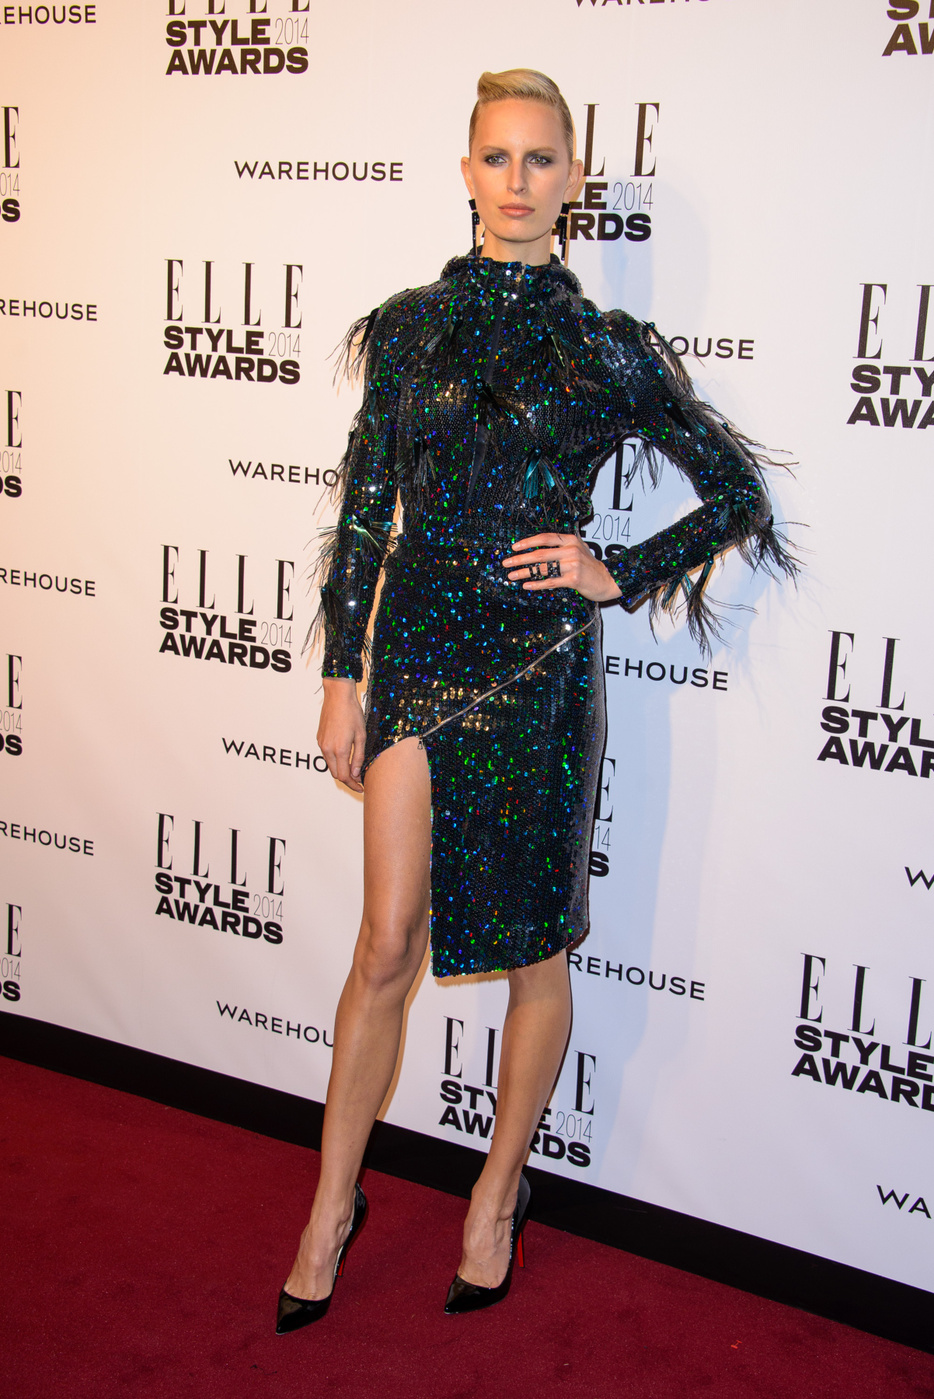 Karolina Kurkova attends  the Elle Style Awards 2014 at one Embankment in London